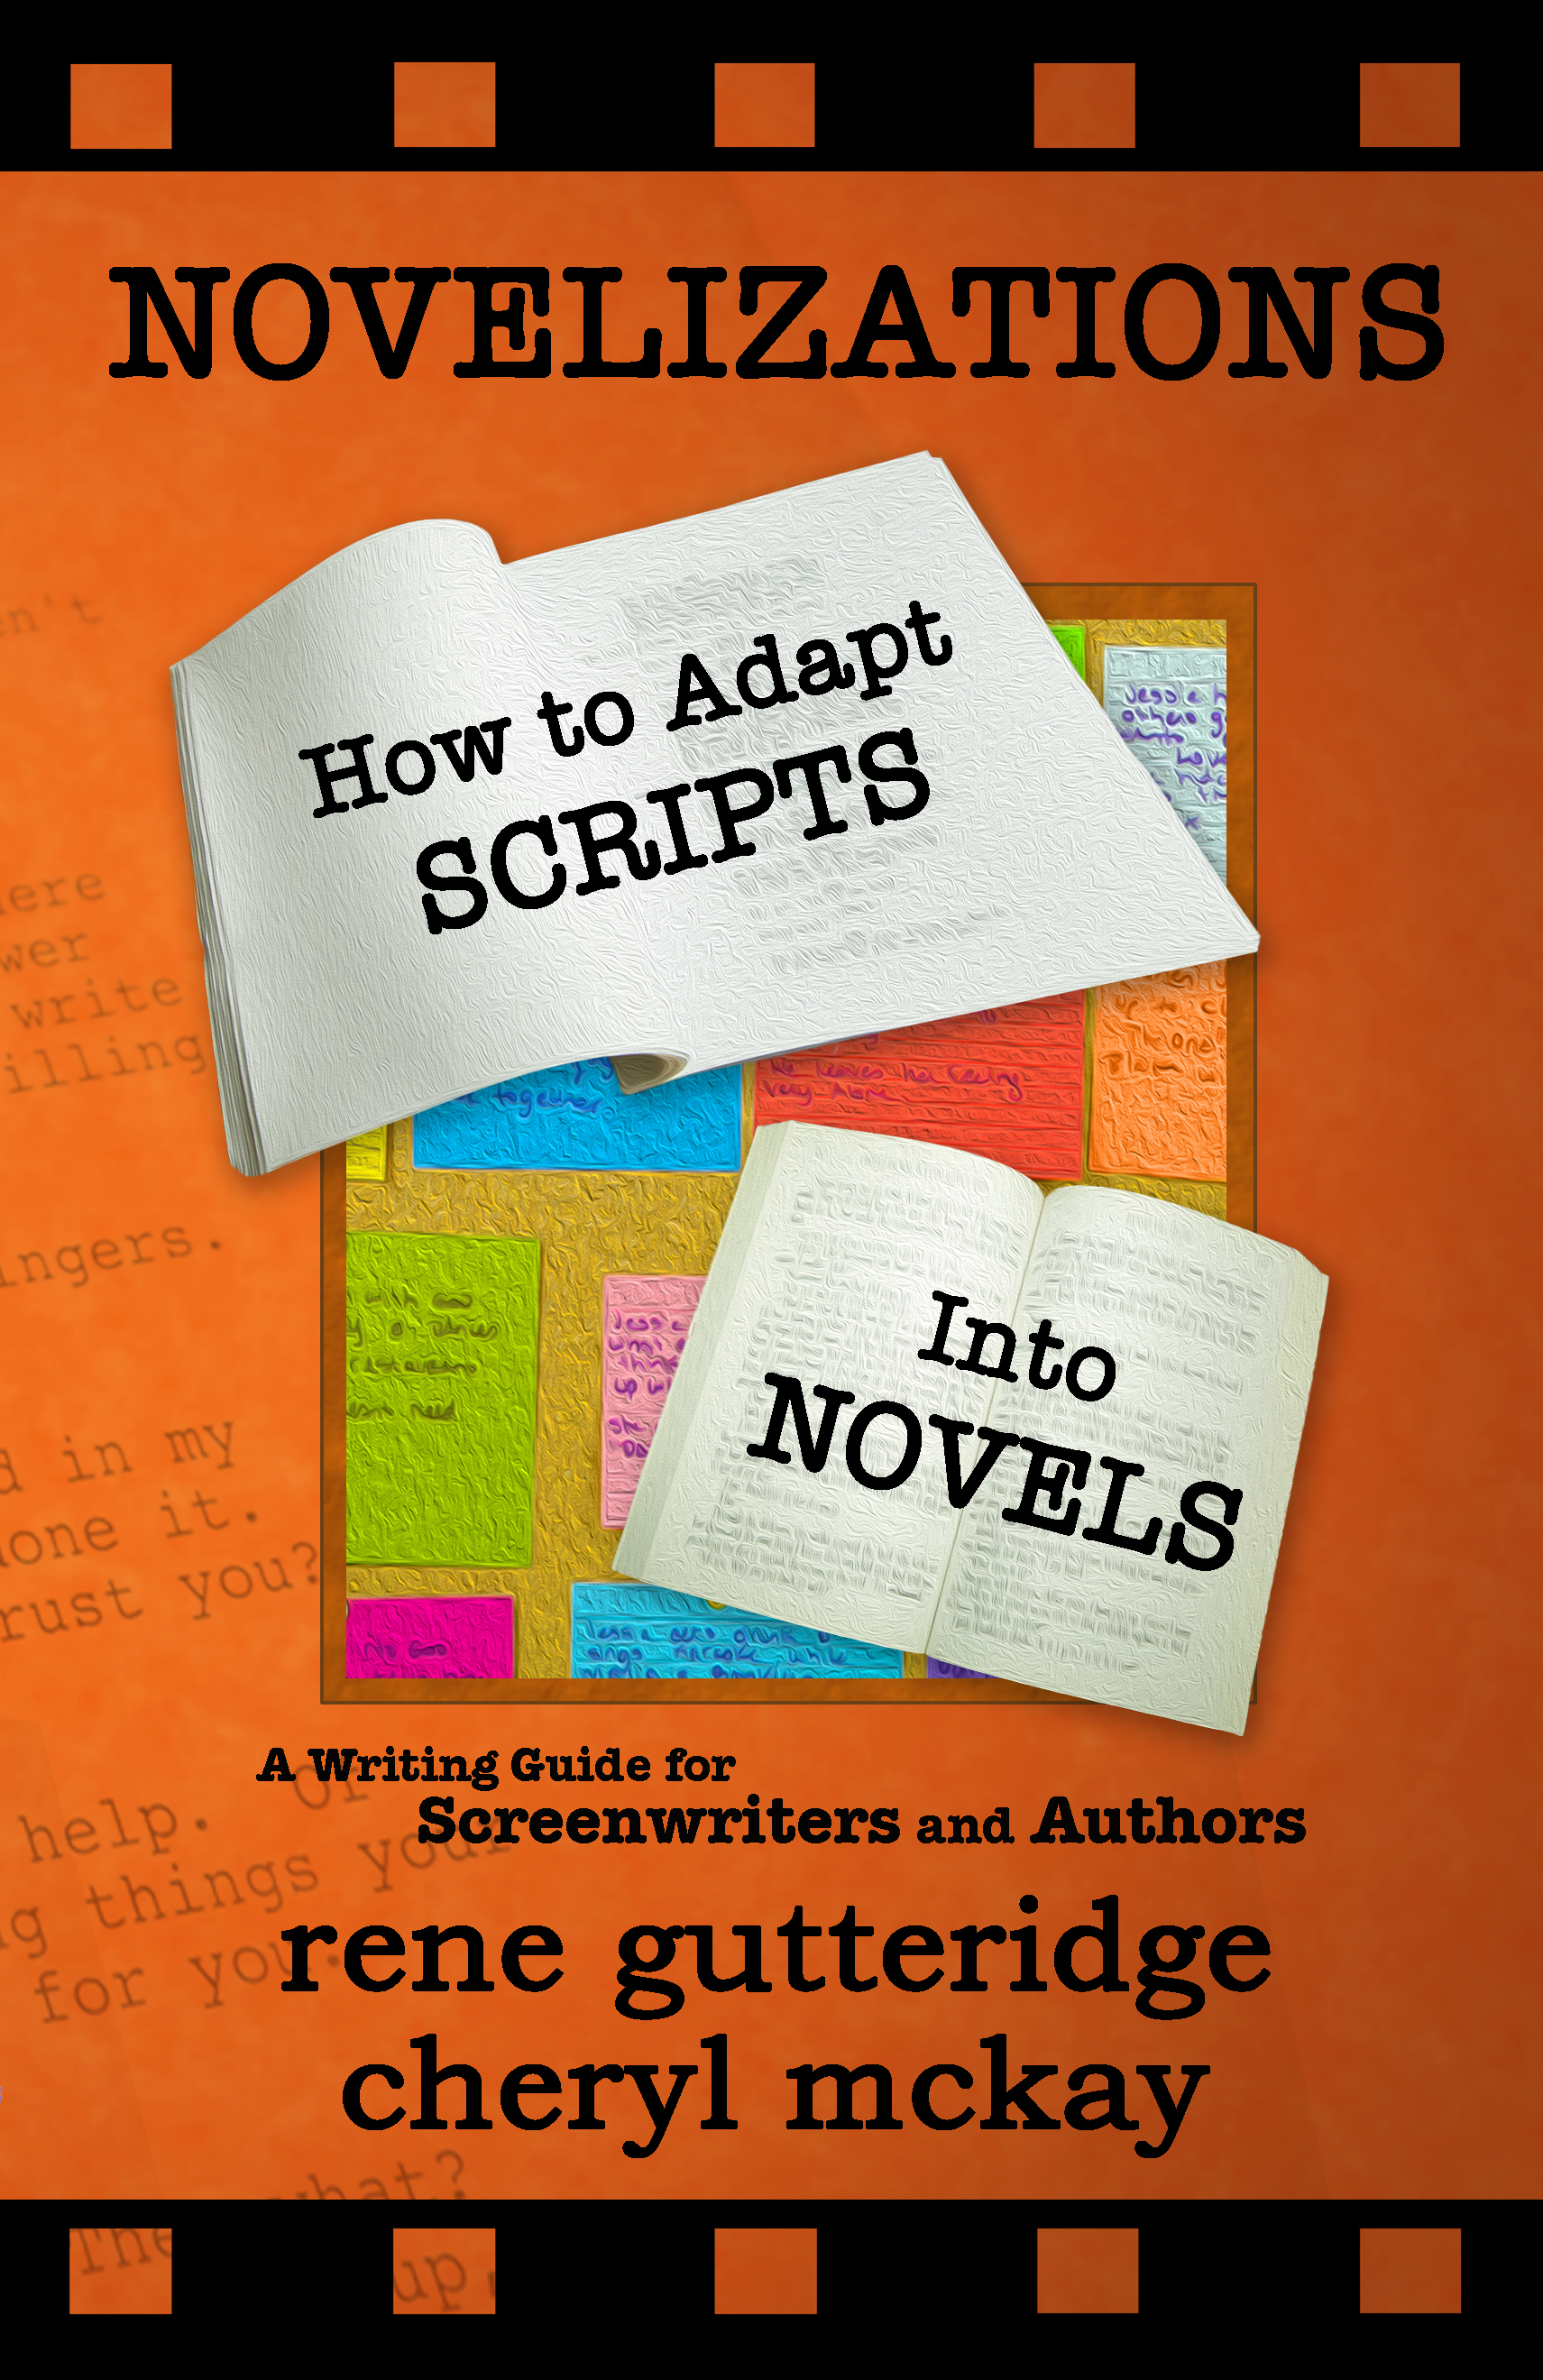 Can I novelize a script I wrote with someone else?